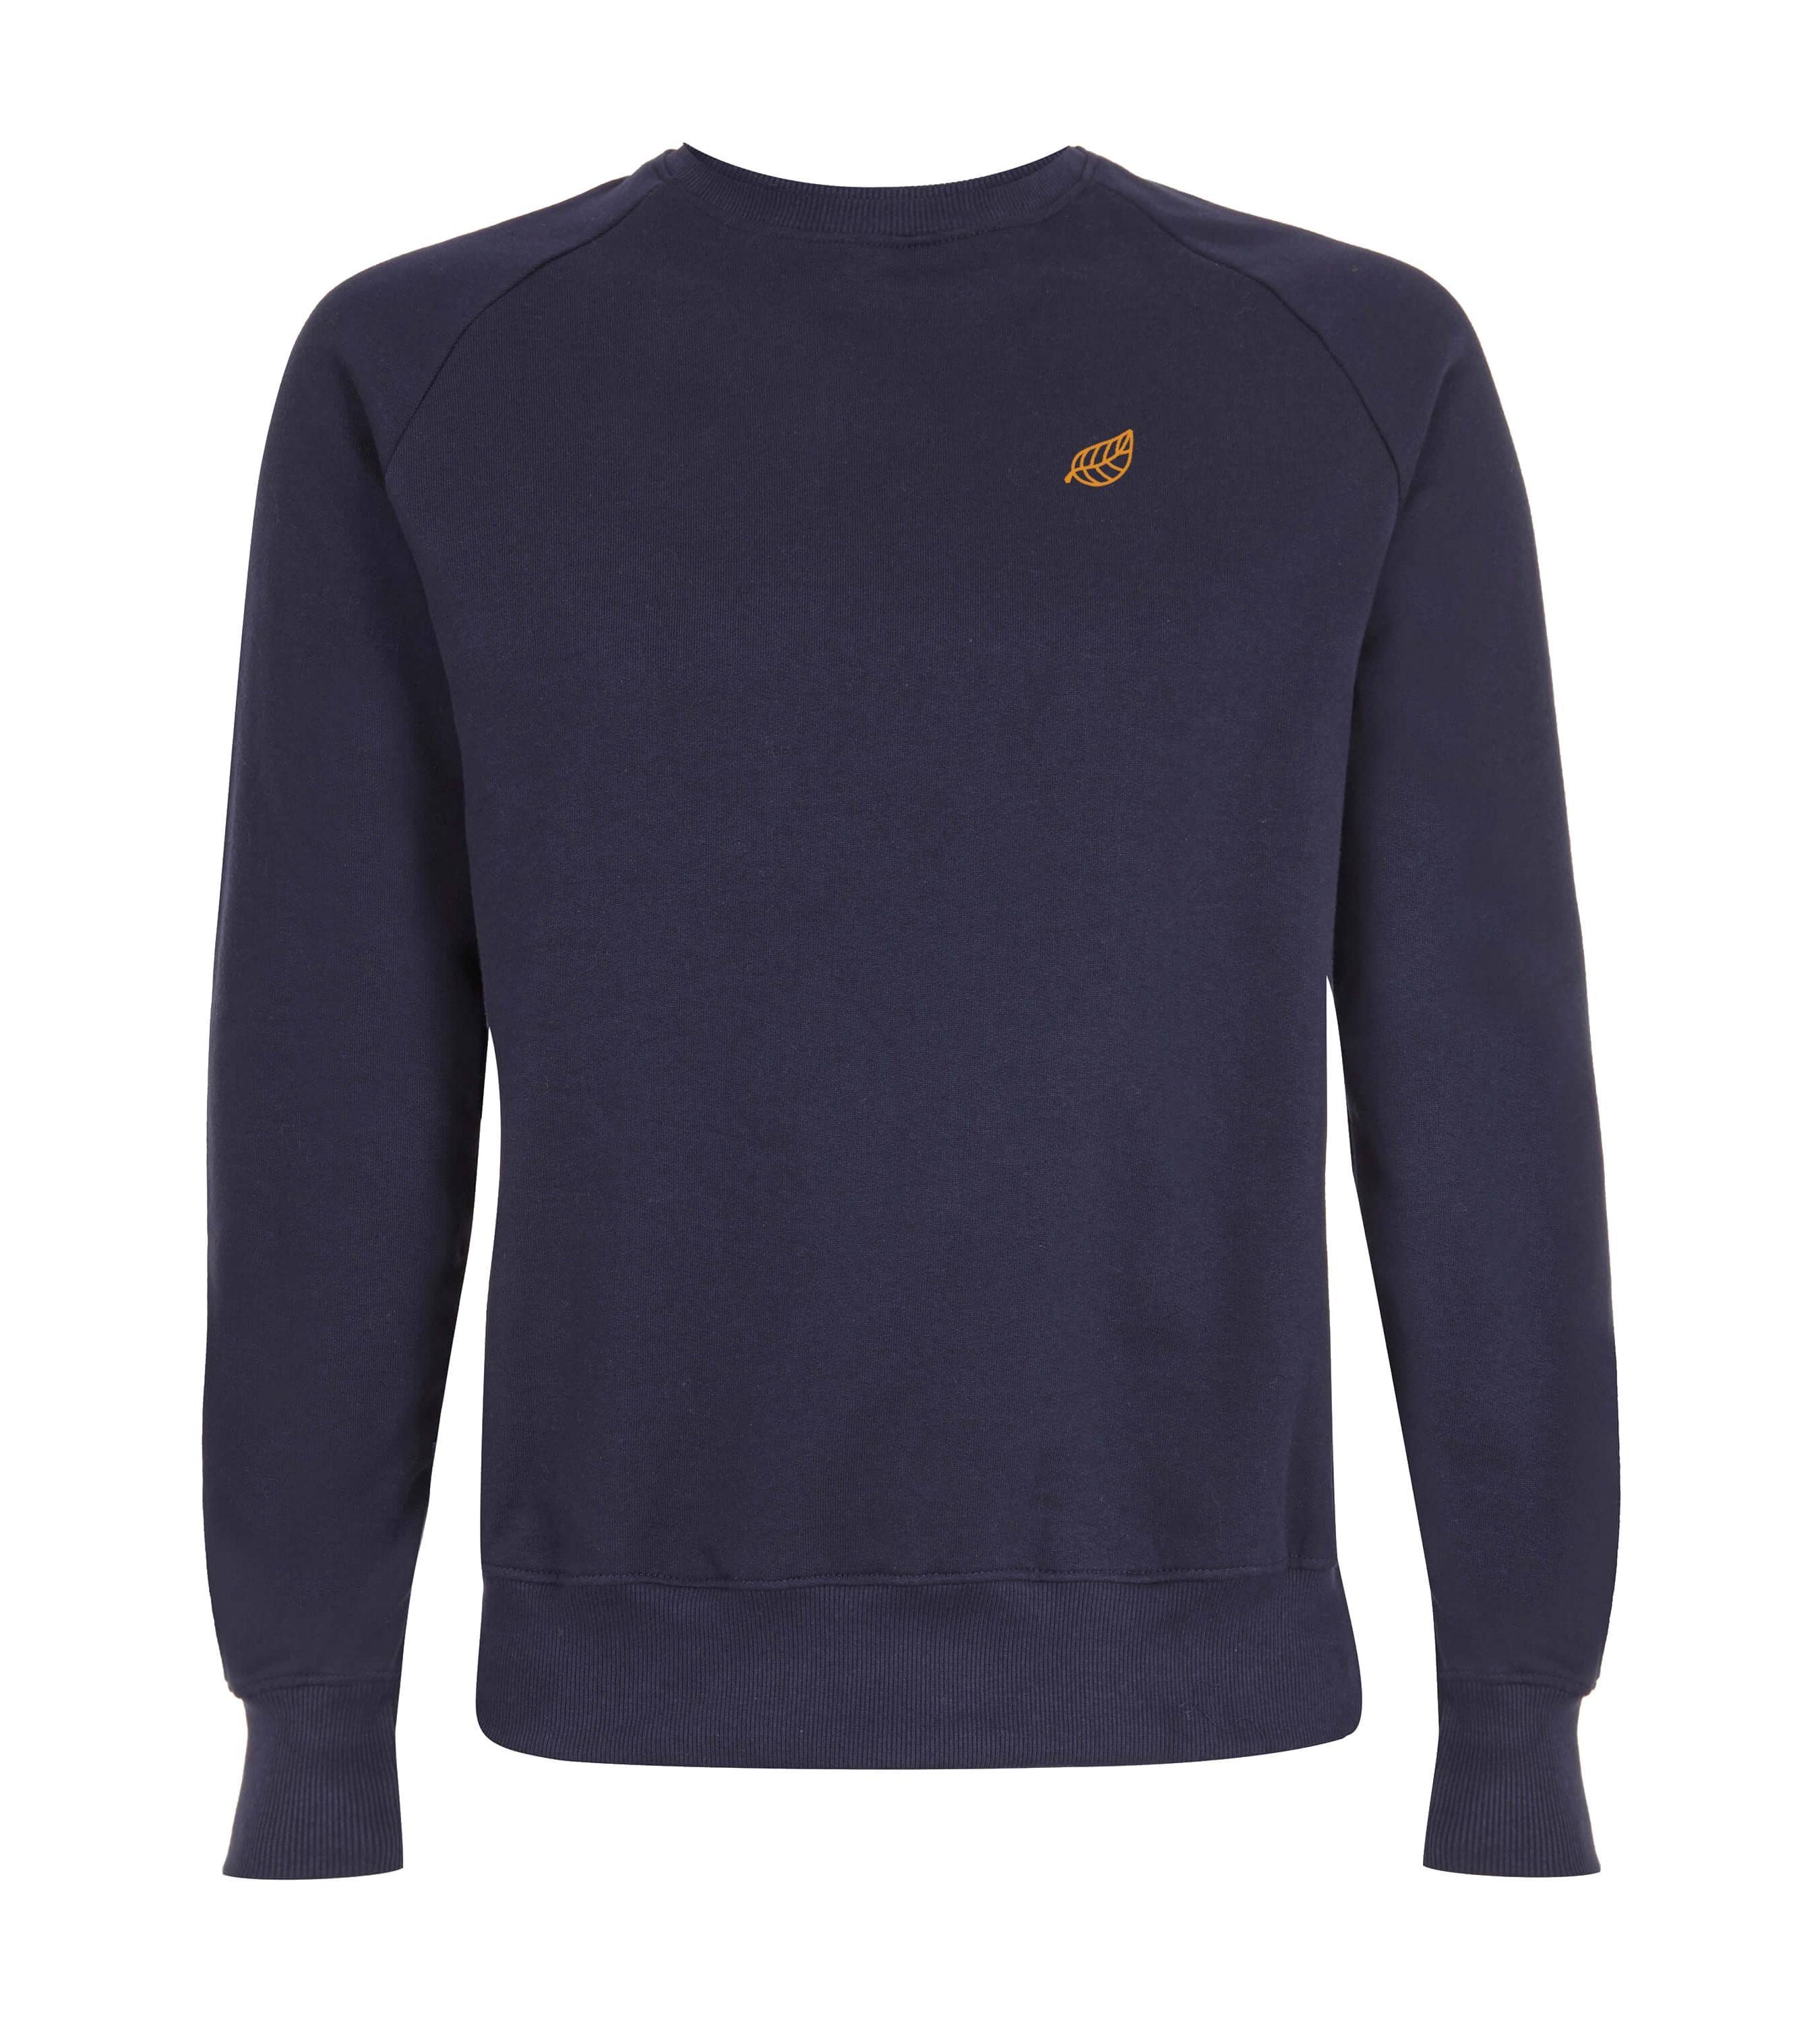 Basis Pullover - Navy Blue